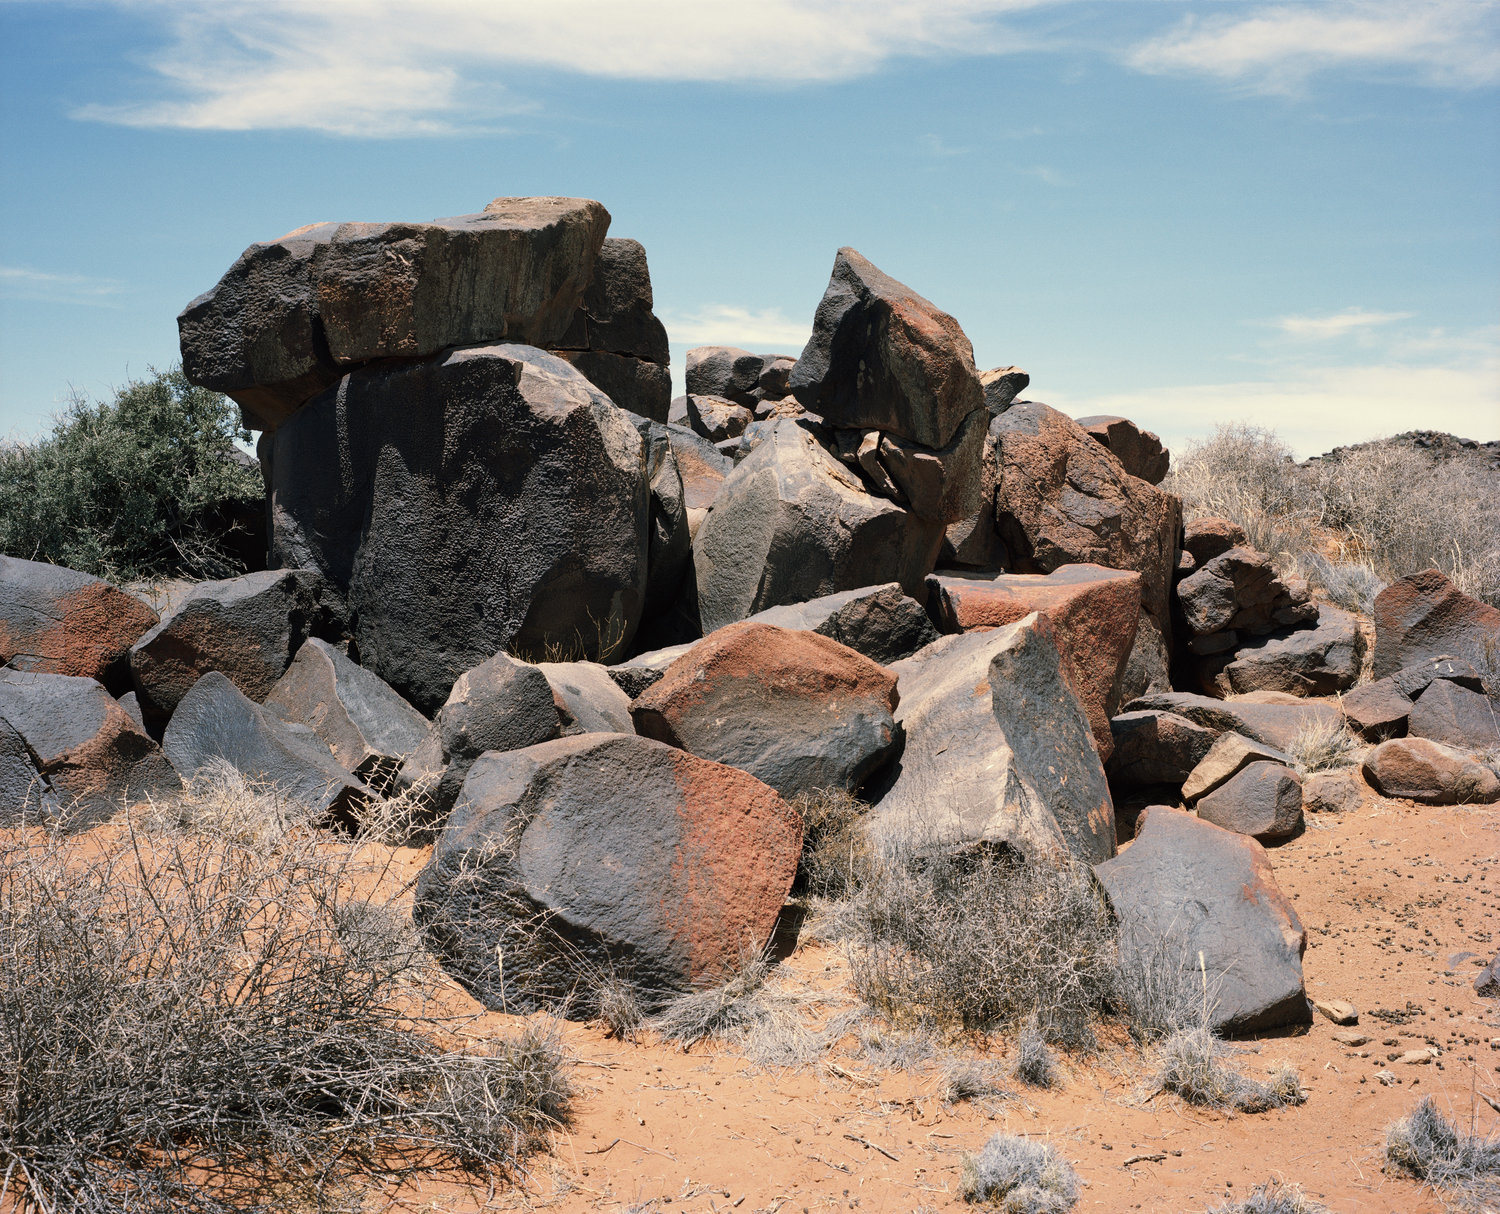 BLACK ROCKS # 1, BETWEEN CALVINIA AND WILLISTON, NORTHERN CAPE